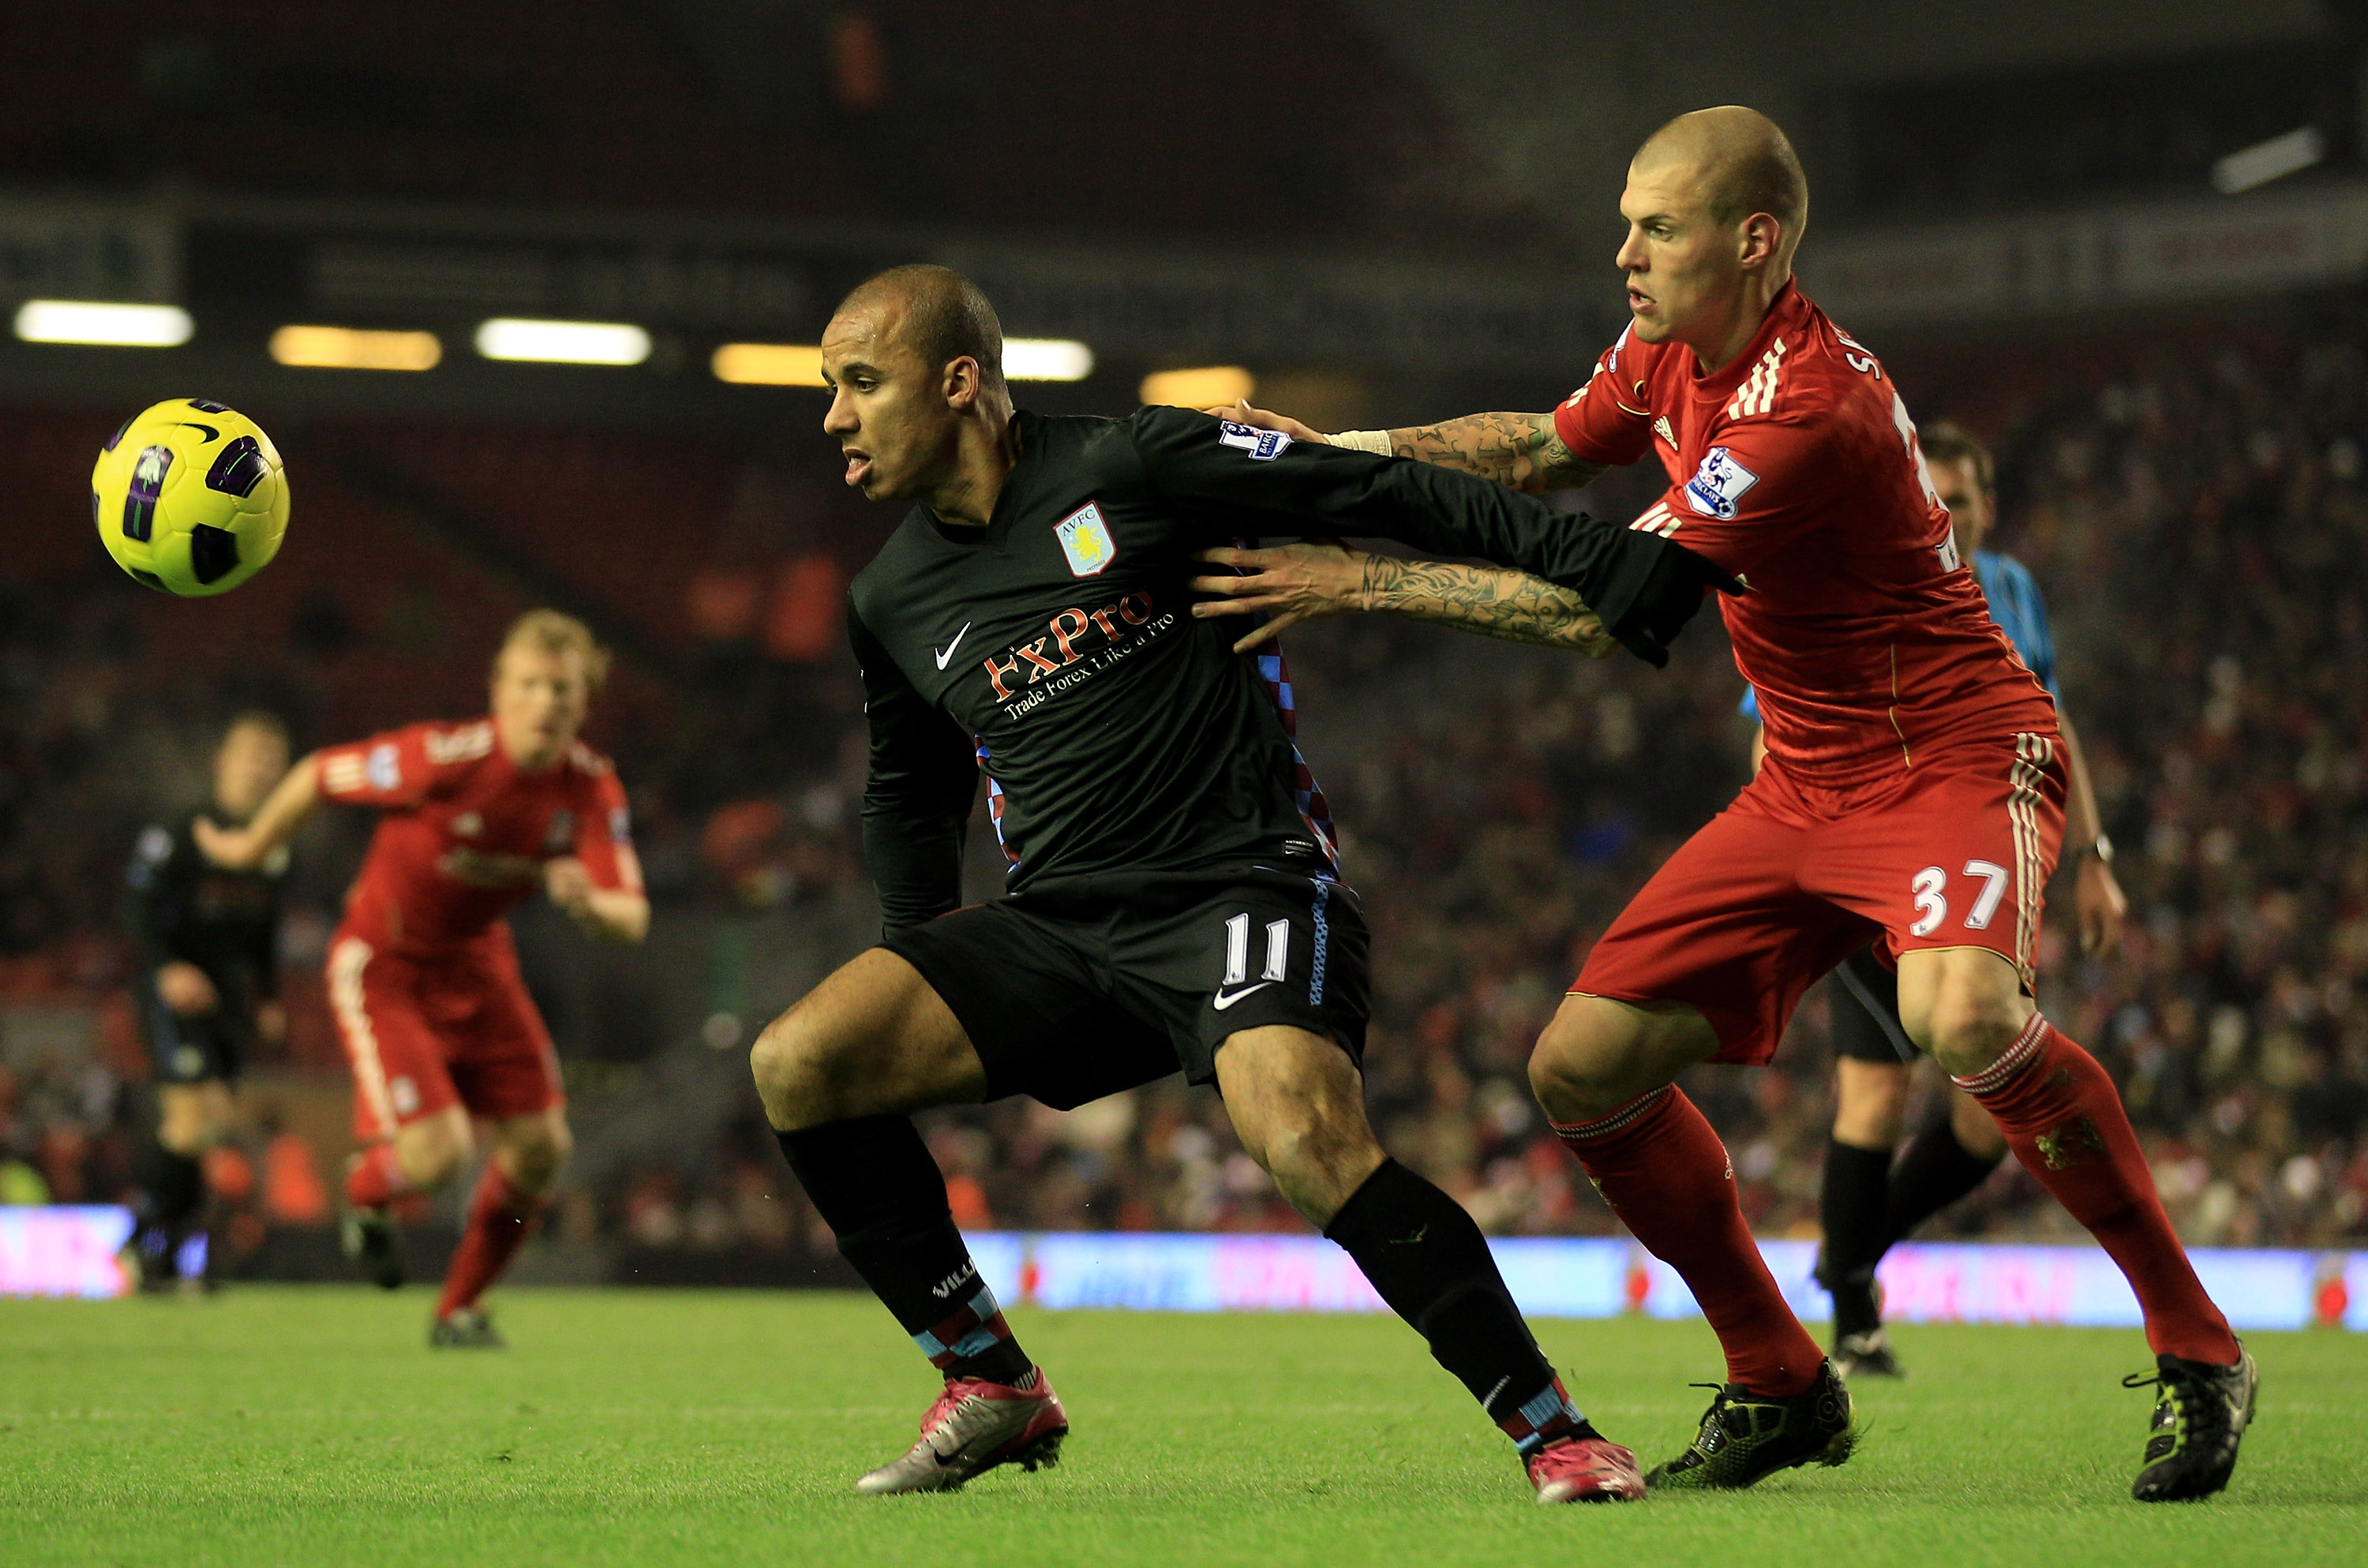 LIVERPOOL, ENGLAND - DECEMBER 06:  Gabriel Agbonlahor of Aston Villa holds off Martin Skrtel of Liverpool during the Barclays Premier League match between Liverpool and Aston Villa at Anfield on December 6, 2010 in Liverpool, England. (Photo by Mark Thomp